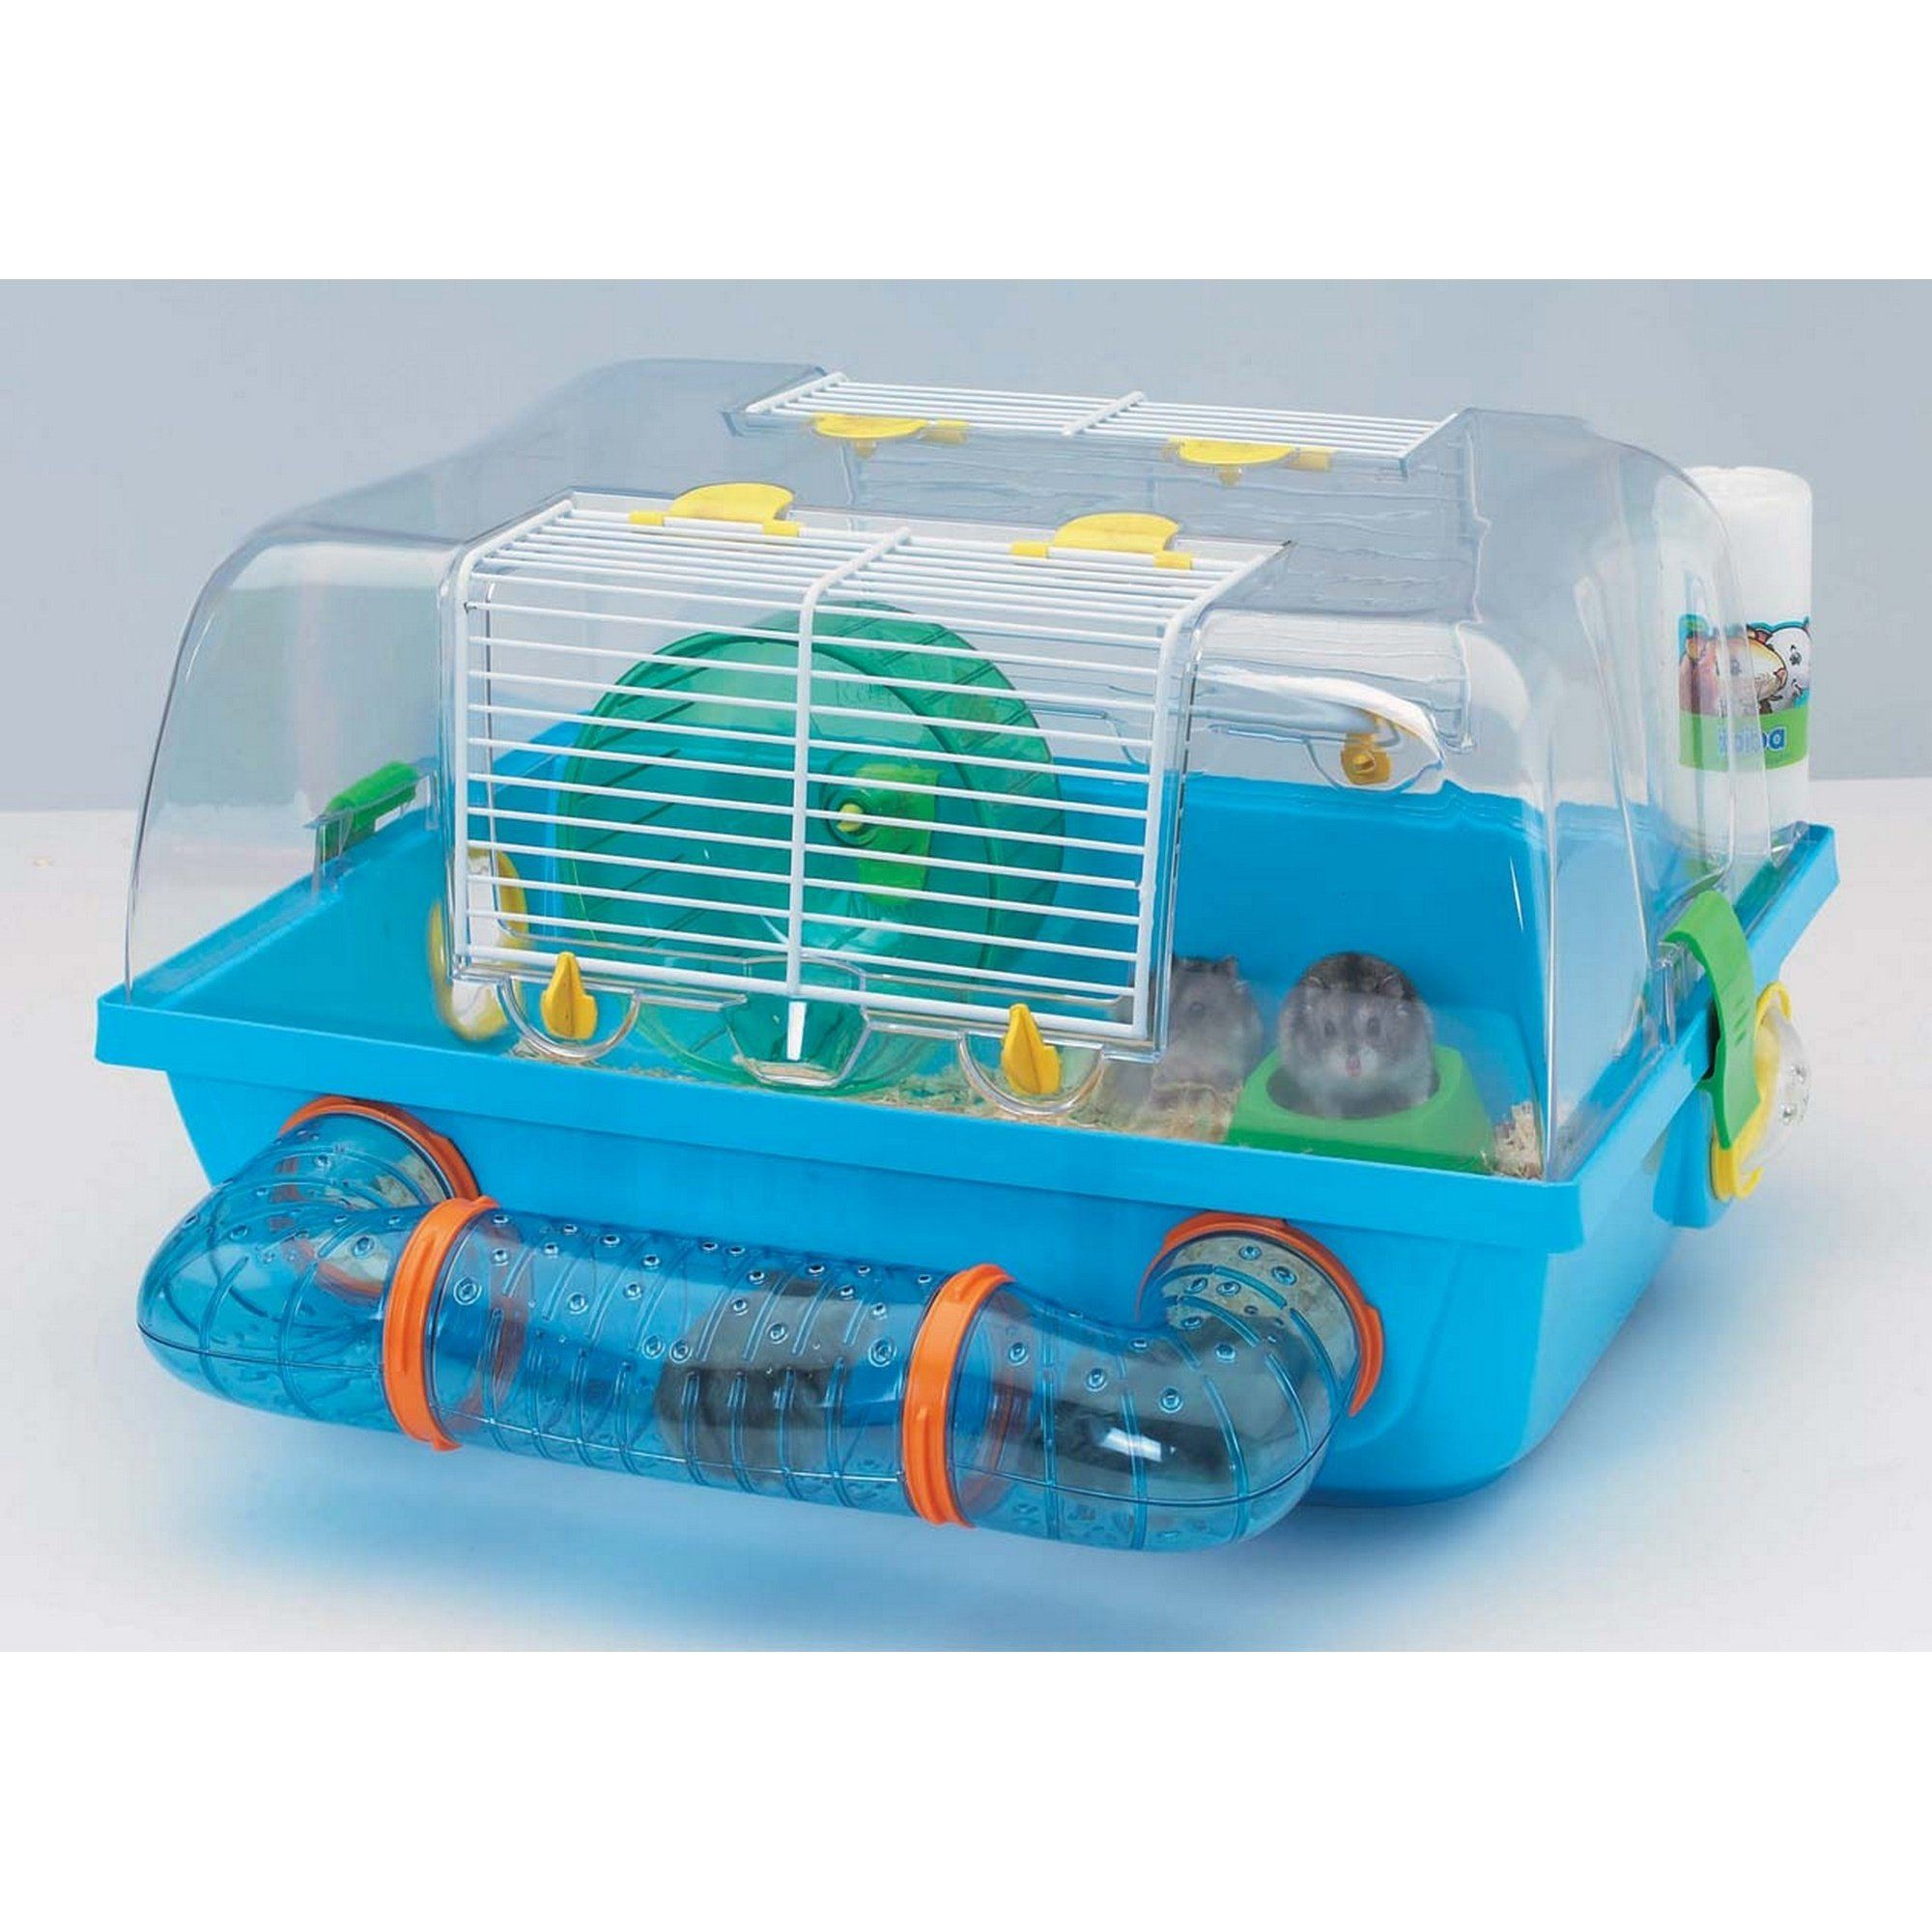 Savic Spelos Mice And Dwarf Hamster Cage Assorted Colors One Size Assorted Wish To Know A Lot More Click The Pict Dwarf Hamster Cages Dwarf Hamster Hamster